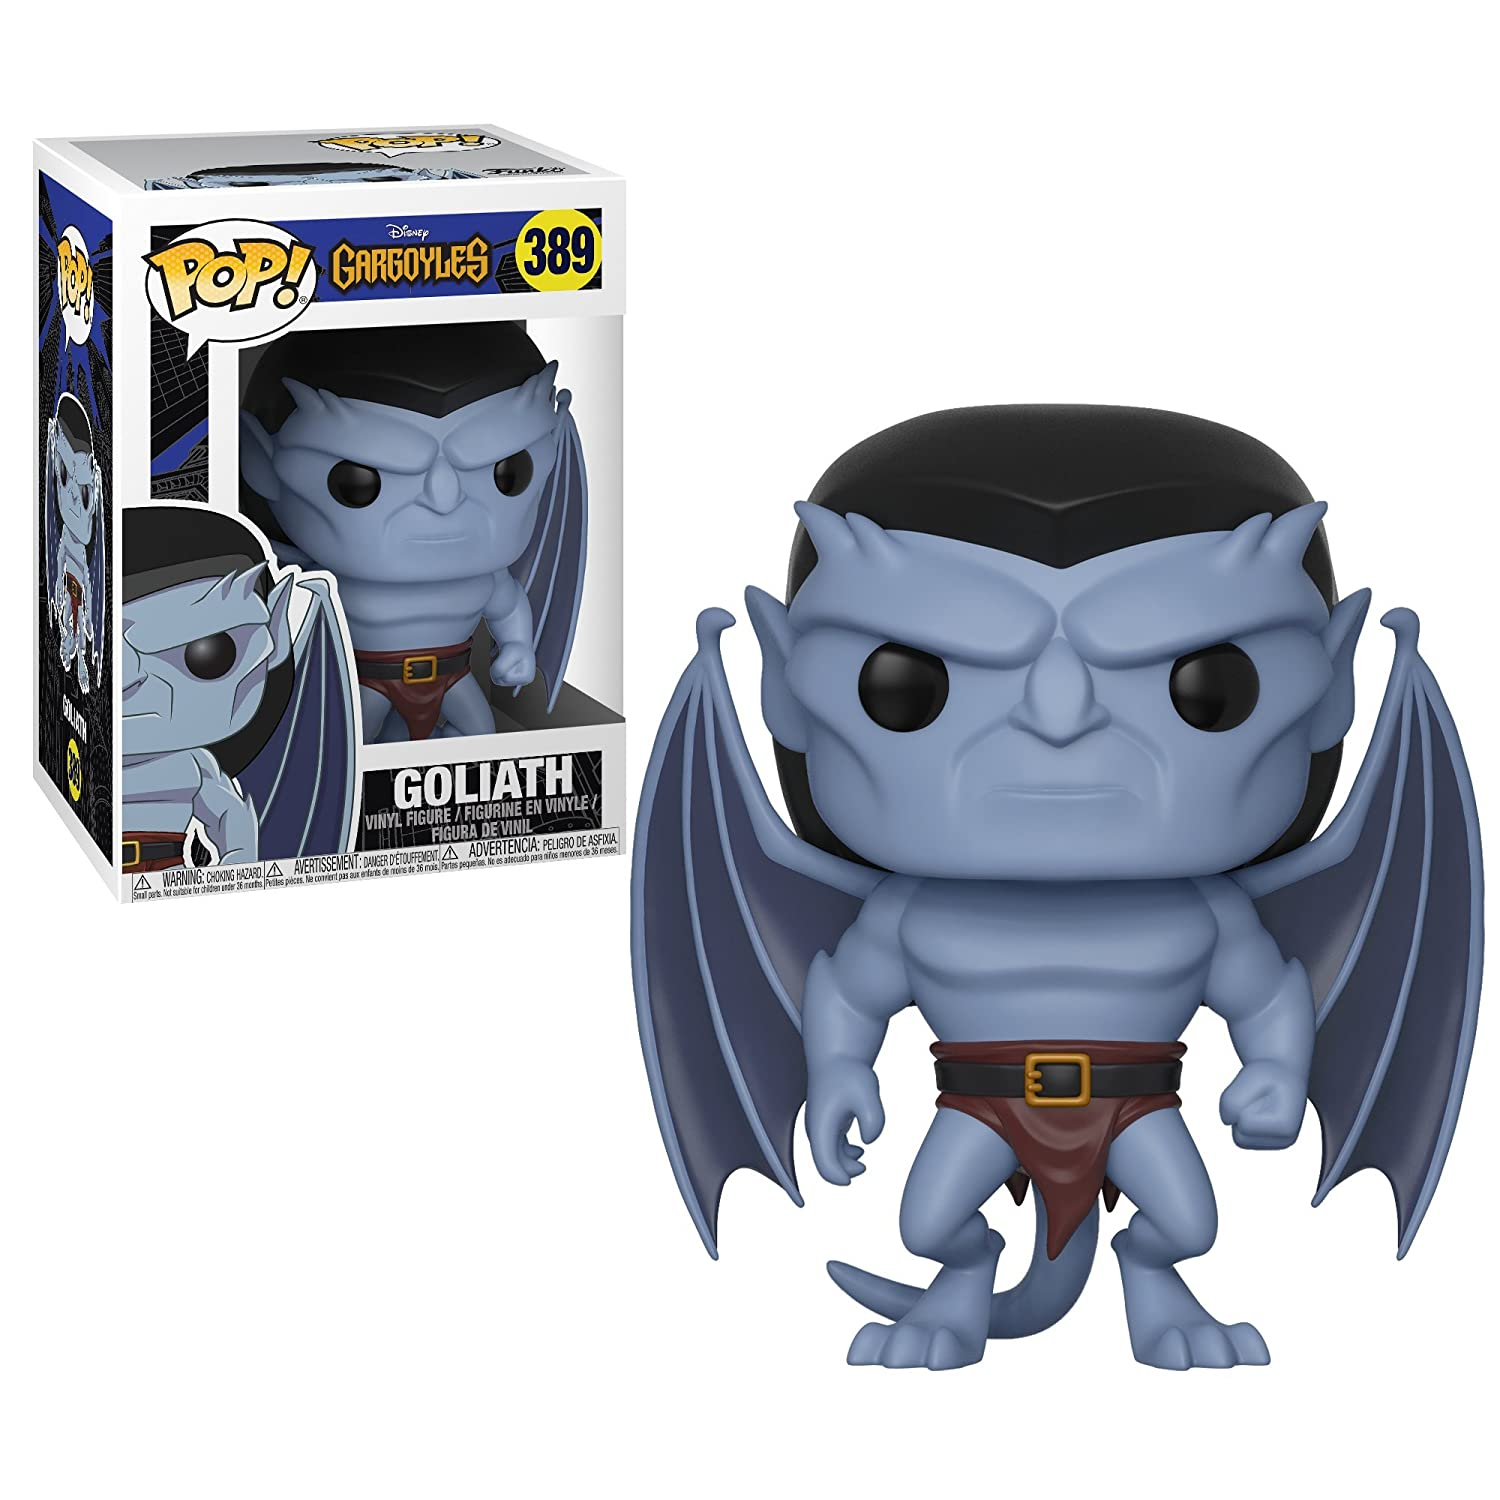 Multicolor 30947 Goliath Collectible Figure Disney: Gargoyles Funko Pop